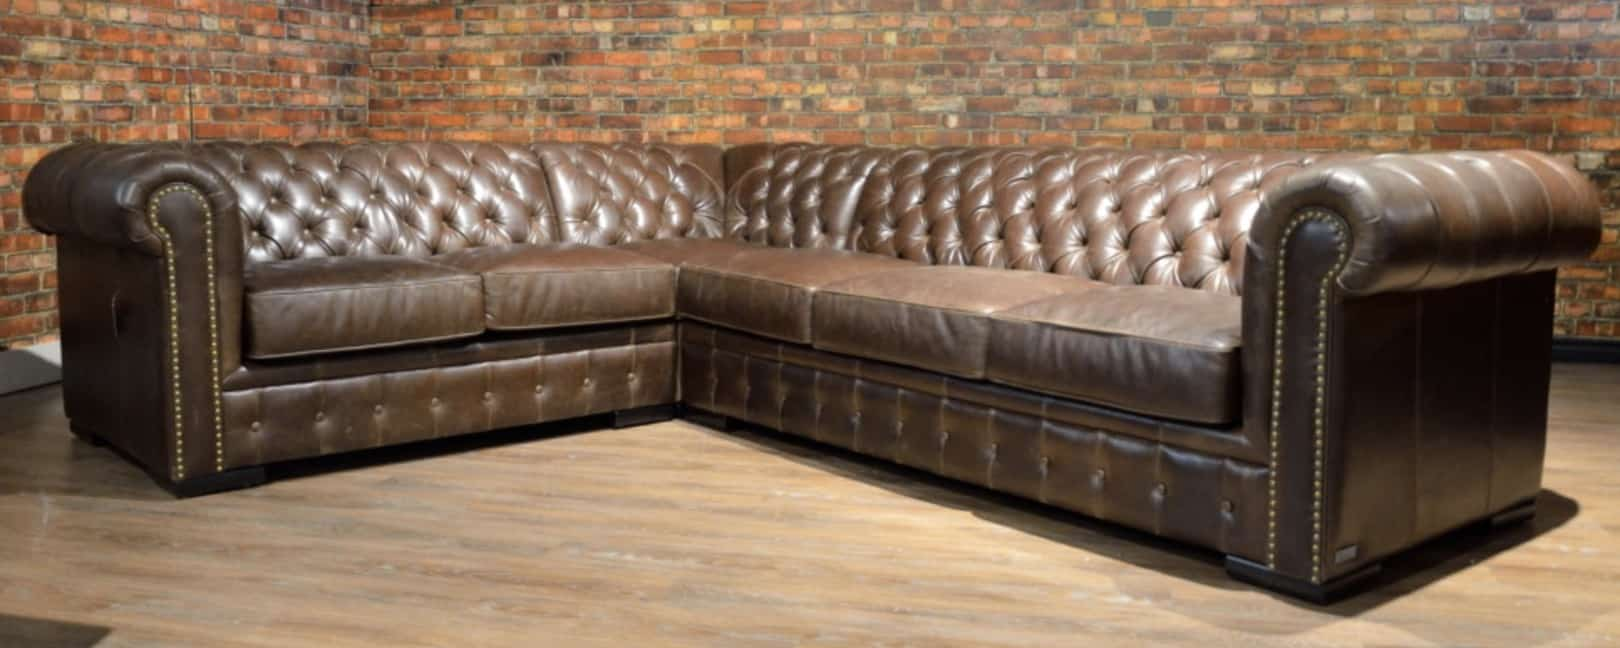 Picture of: The Camelot Leather Sectional Rhf Canada S Boss Leather Sofas And Furniture